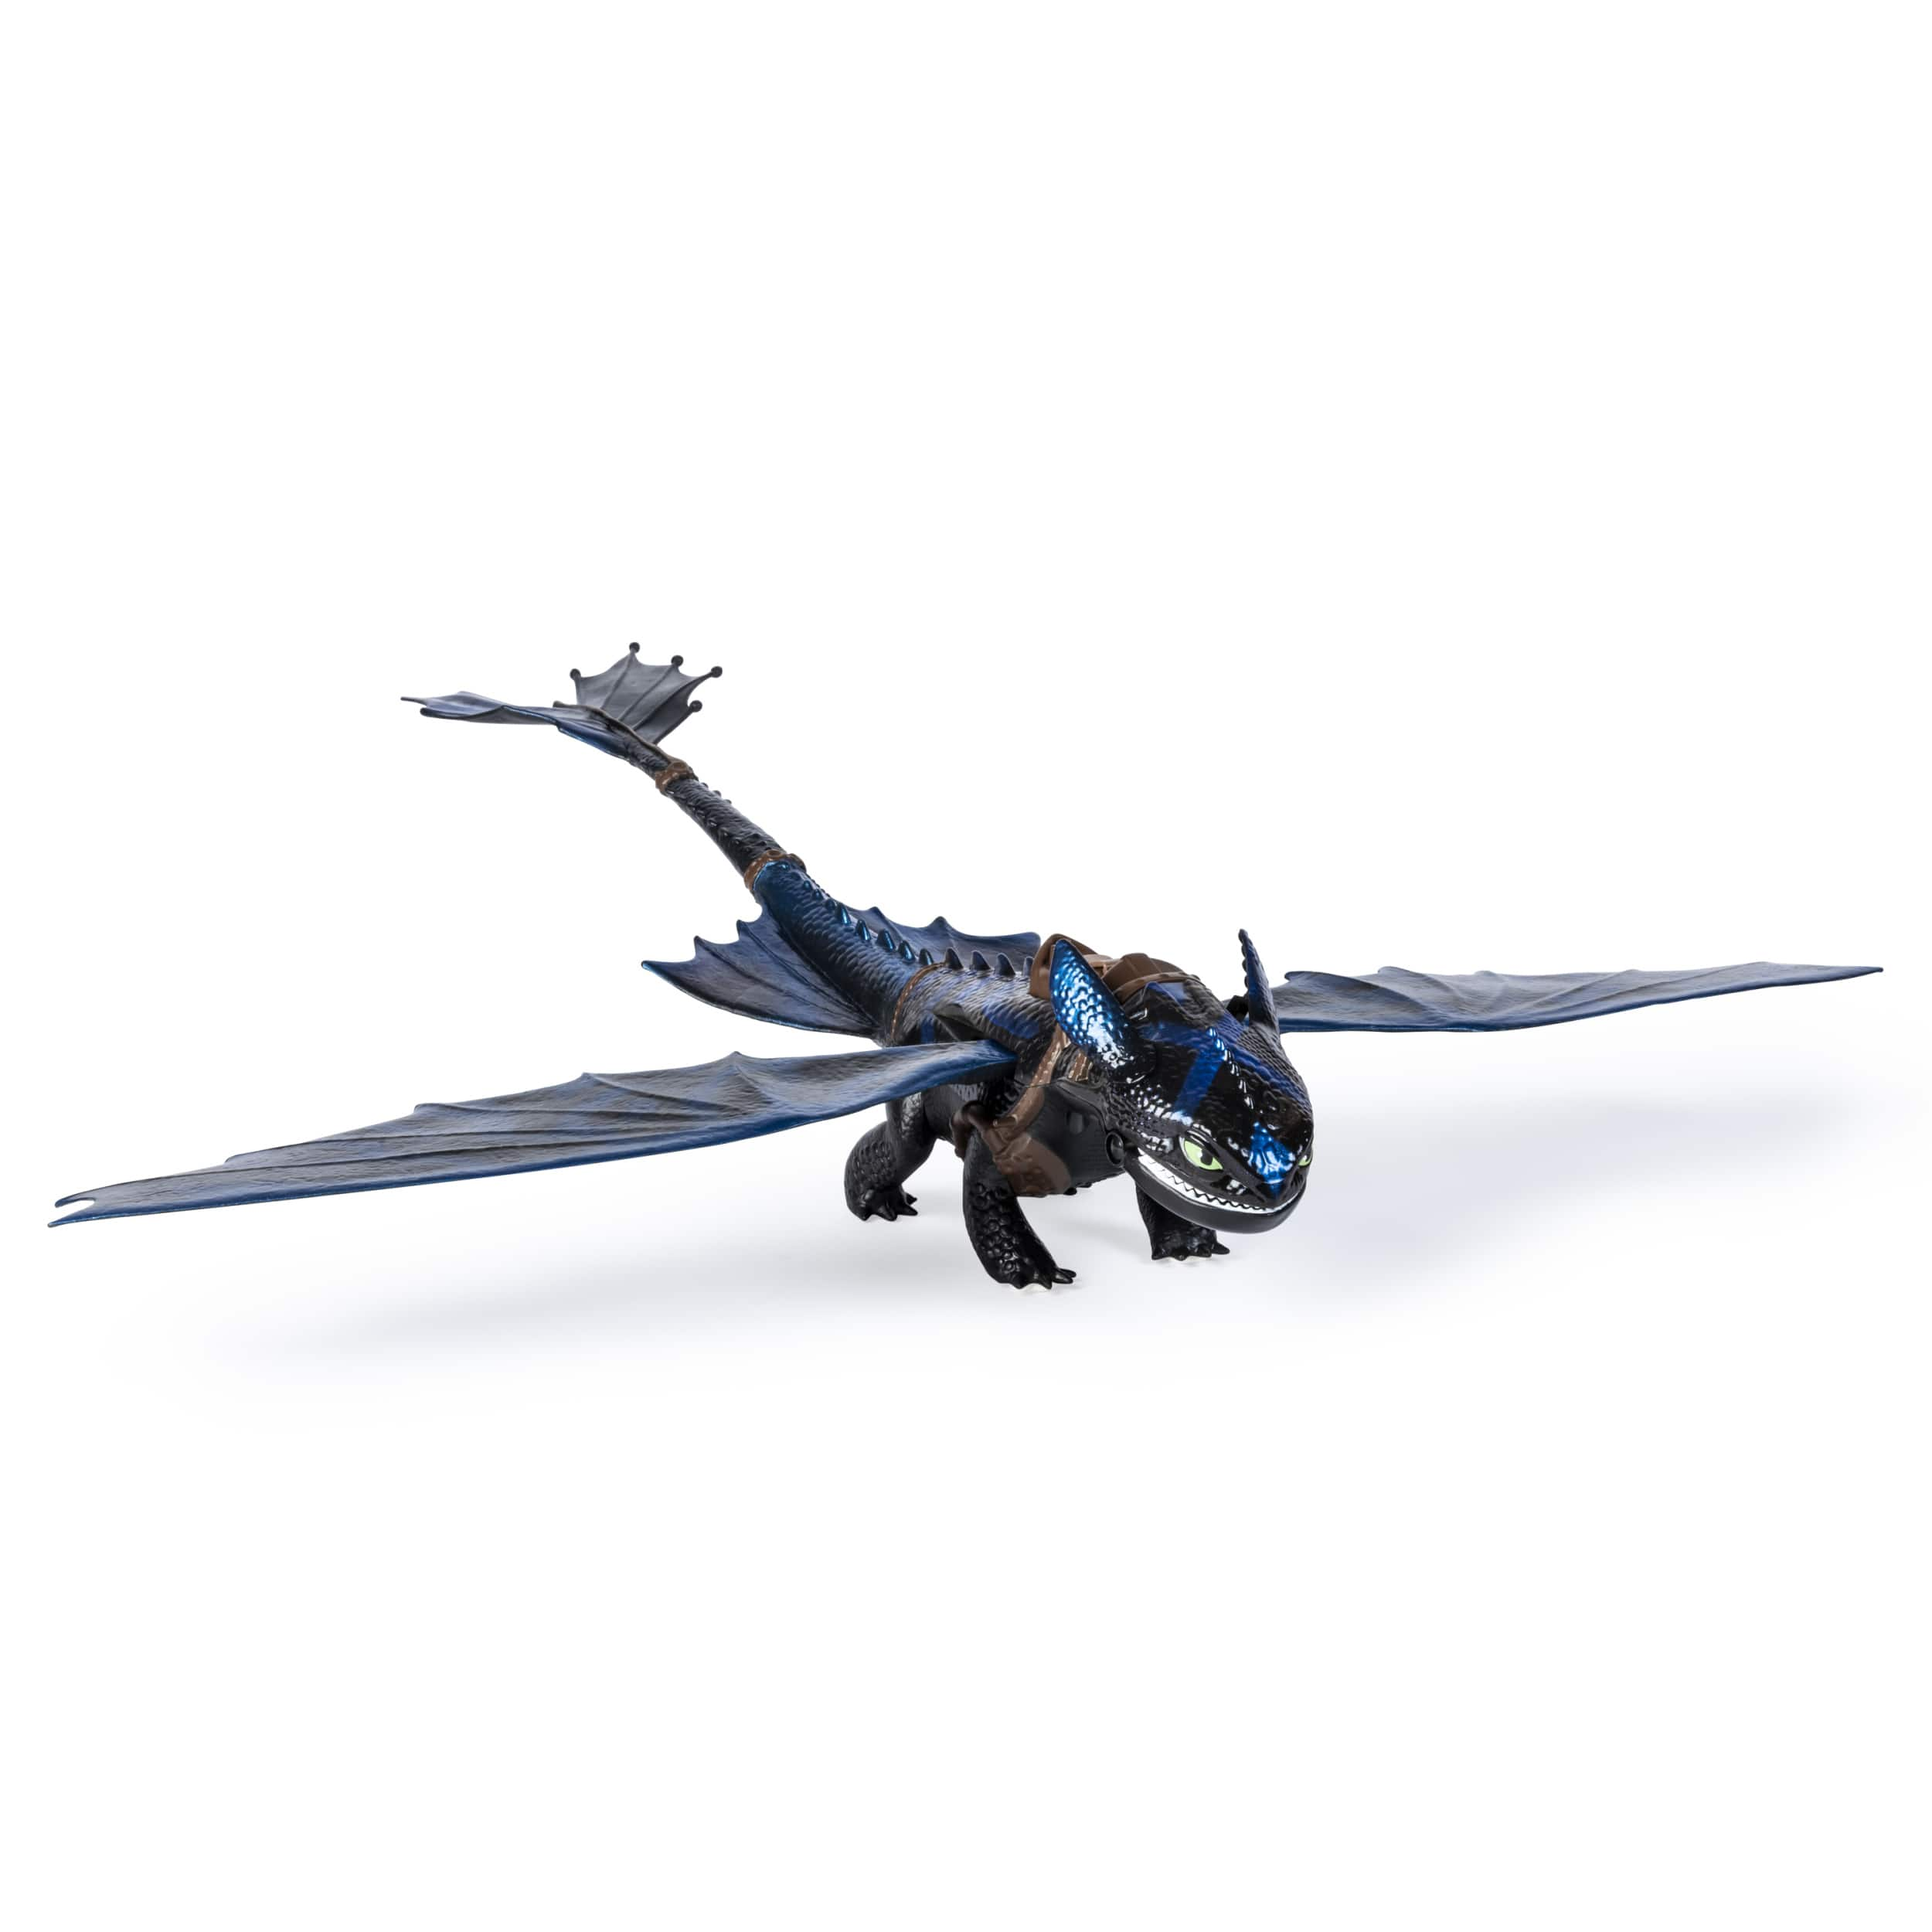 DreamWorks Dragons, Giant Fire Breathing Toothless, 20-inch Dragon with Fire Breathing Effects and Bioluminescent Color, for Kids Aged 4 and Up $9.99 YMWV